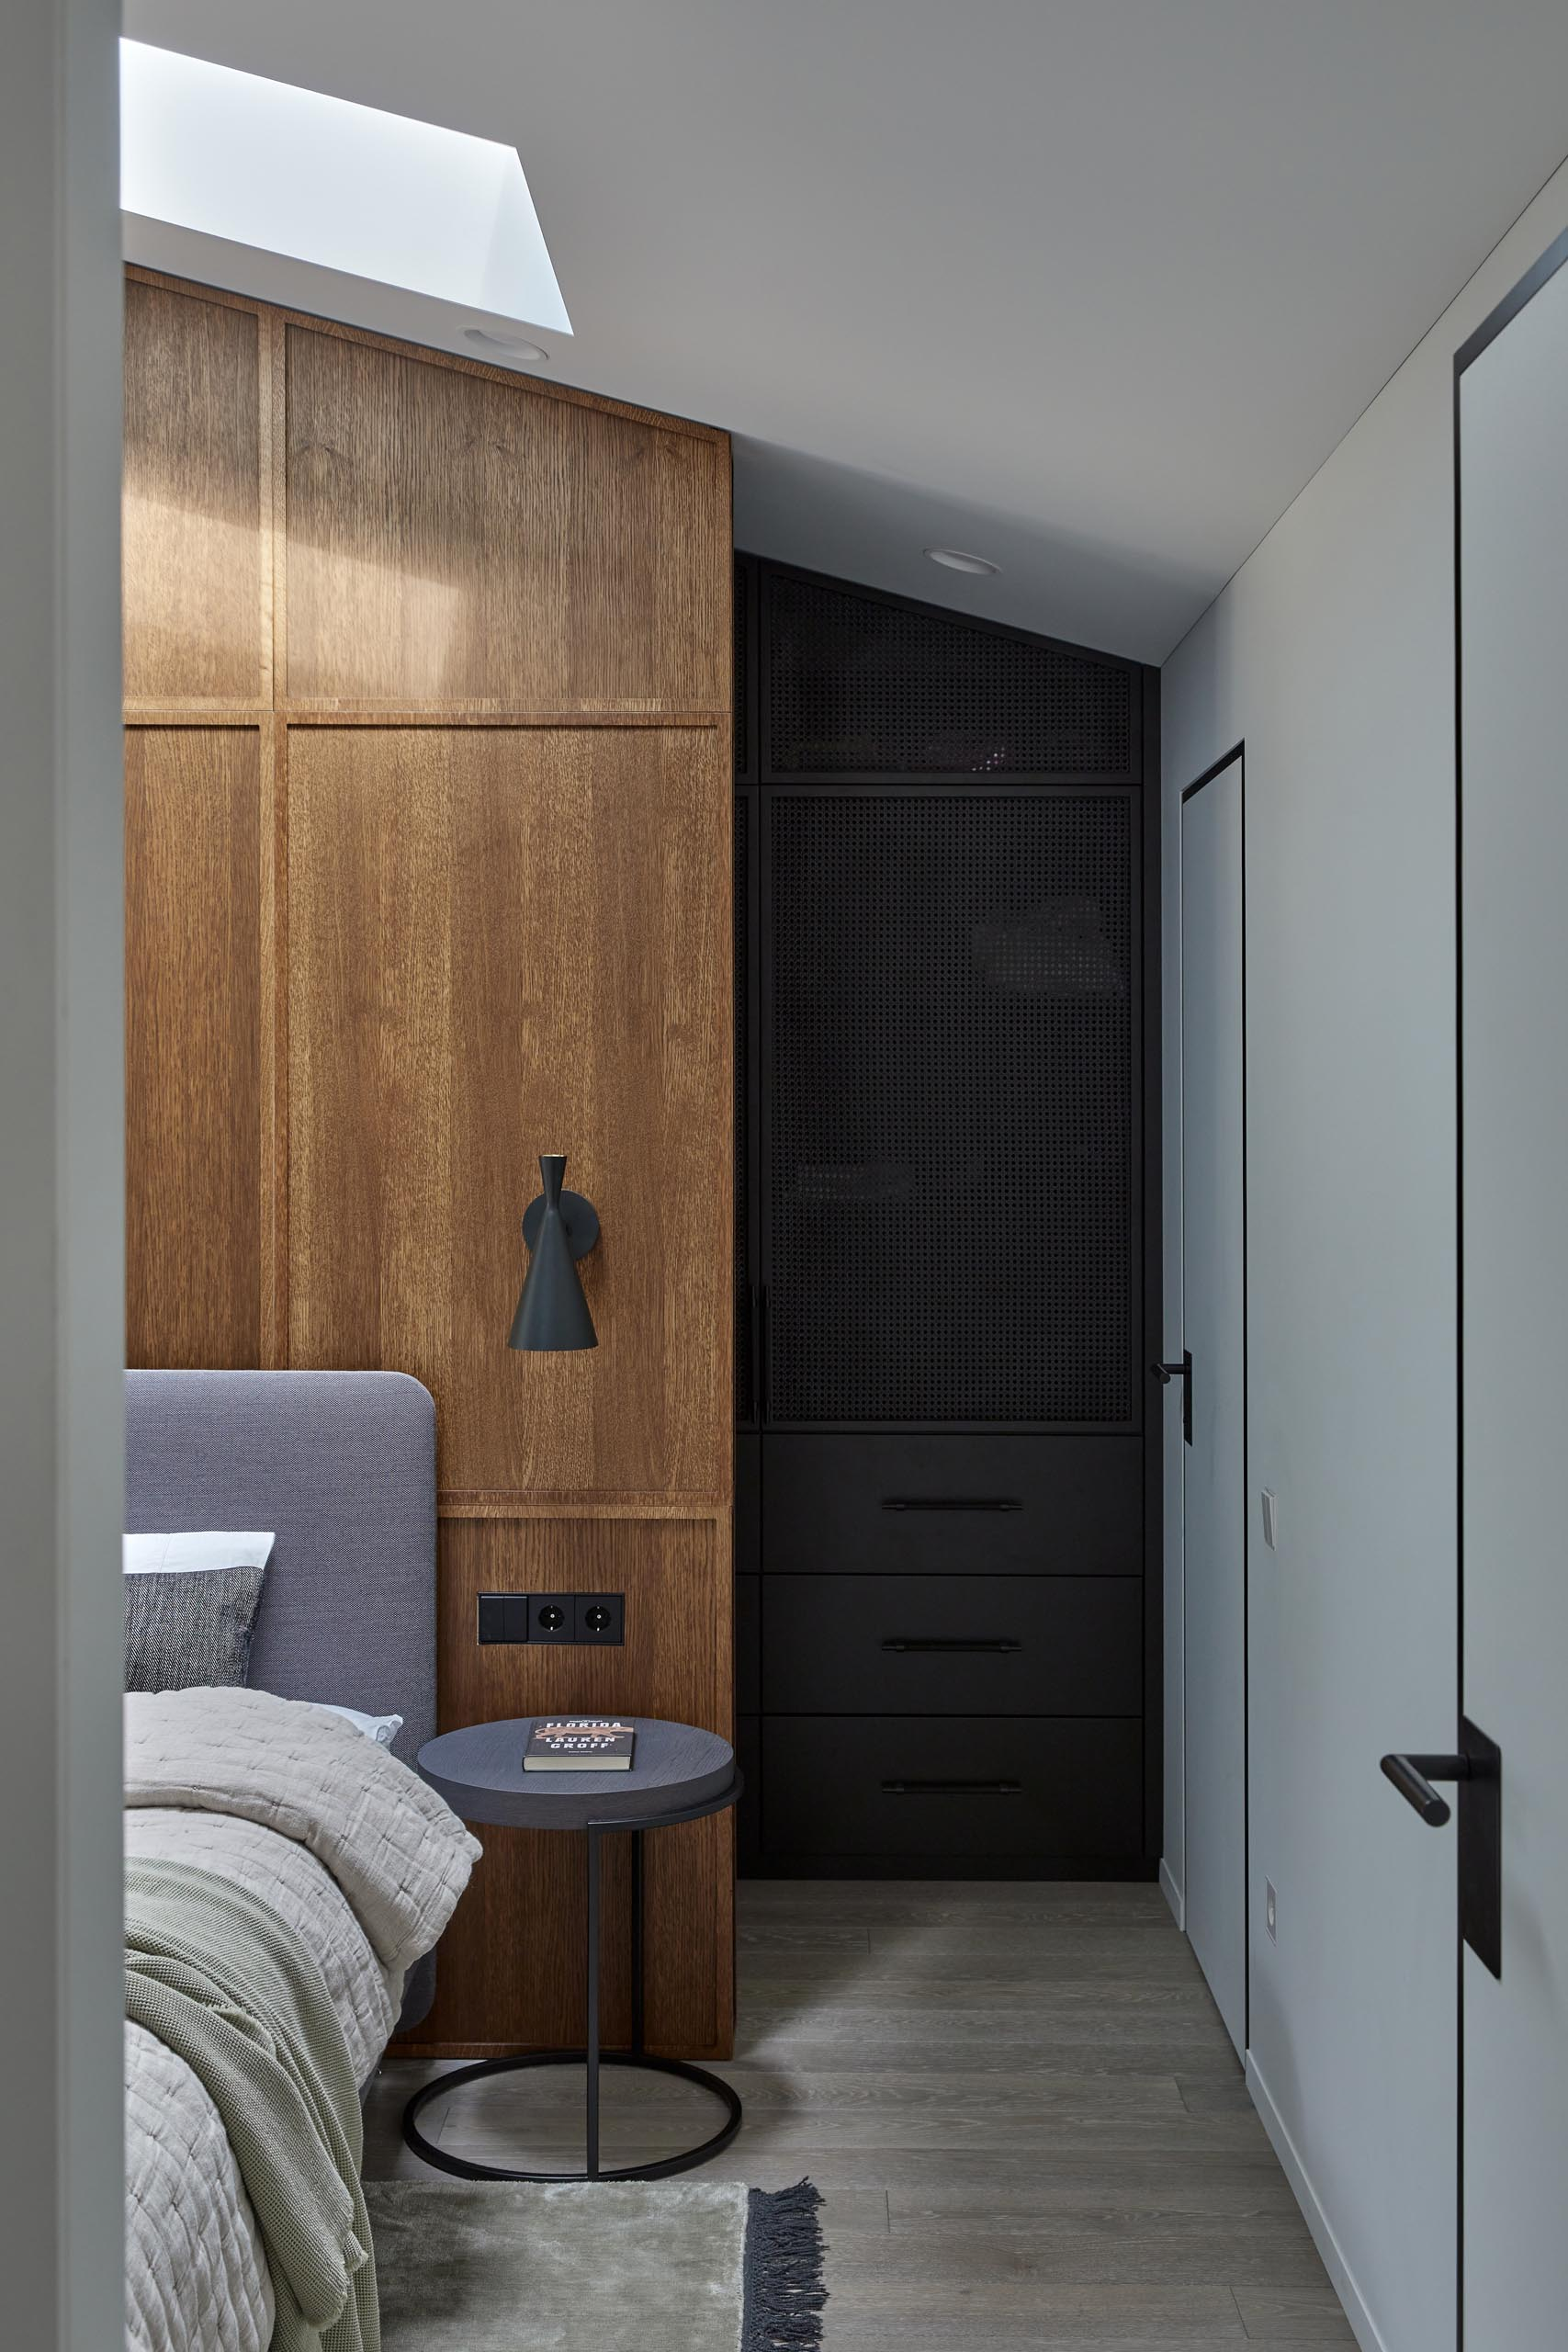 In is modern primary bedroom, there's yet another wood accent wall, this time, providing a backdrop for the gray upholstered bed, while the dark cabinetry of the wardrobe provides a contrasting element in the room.